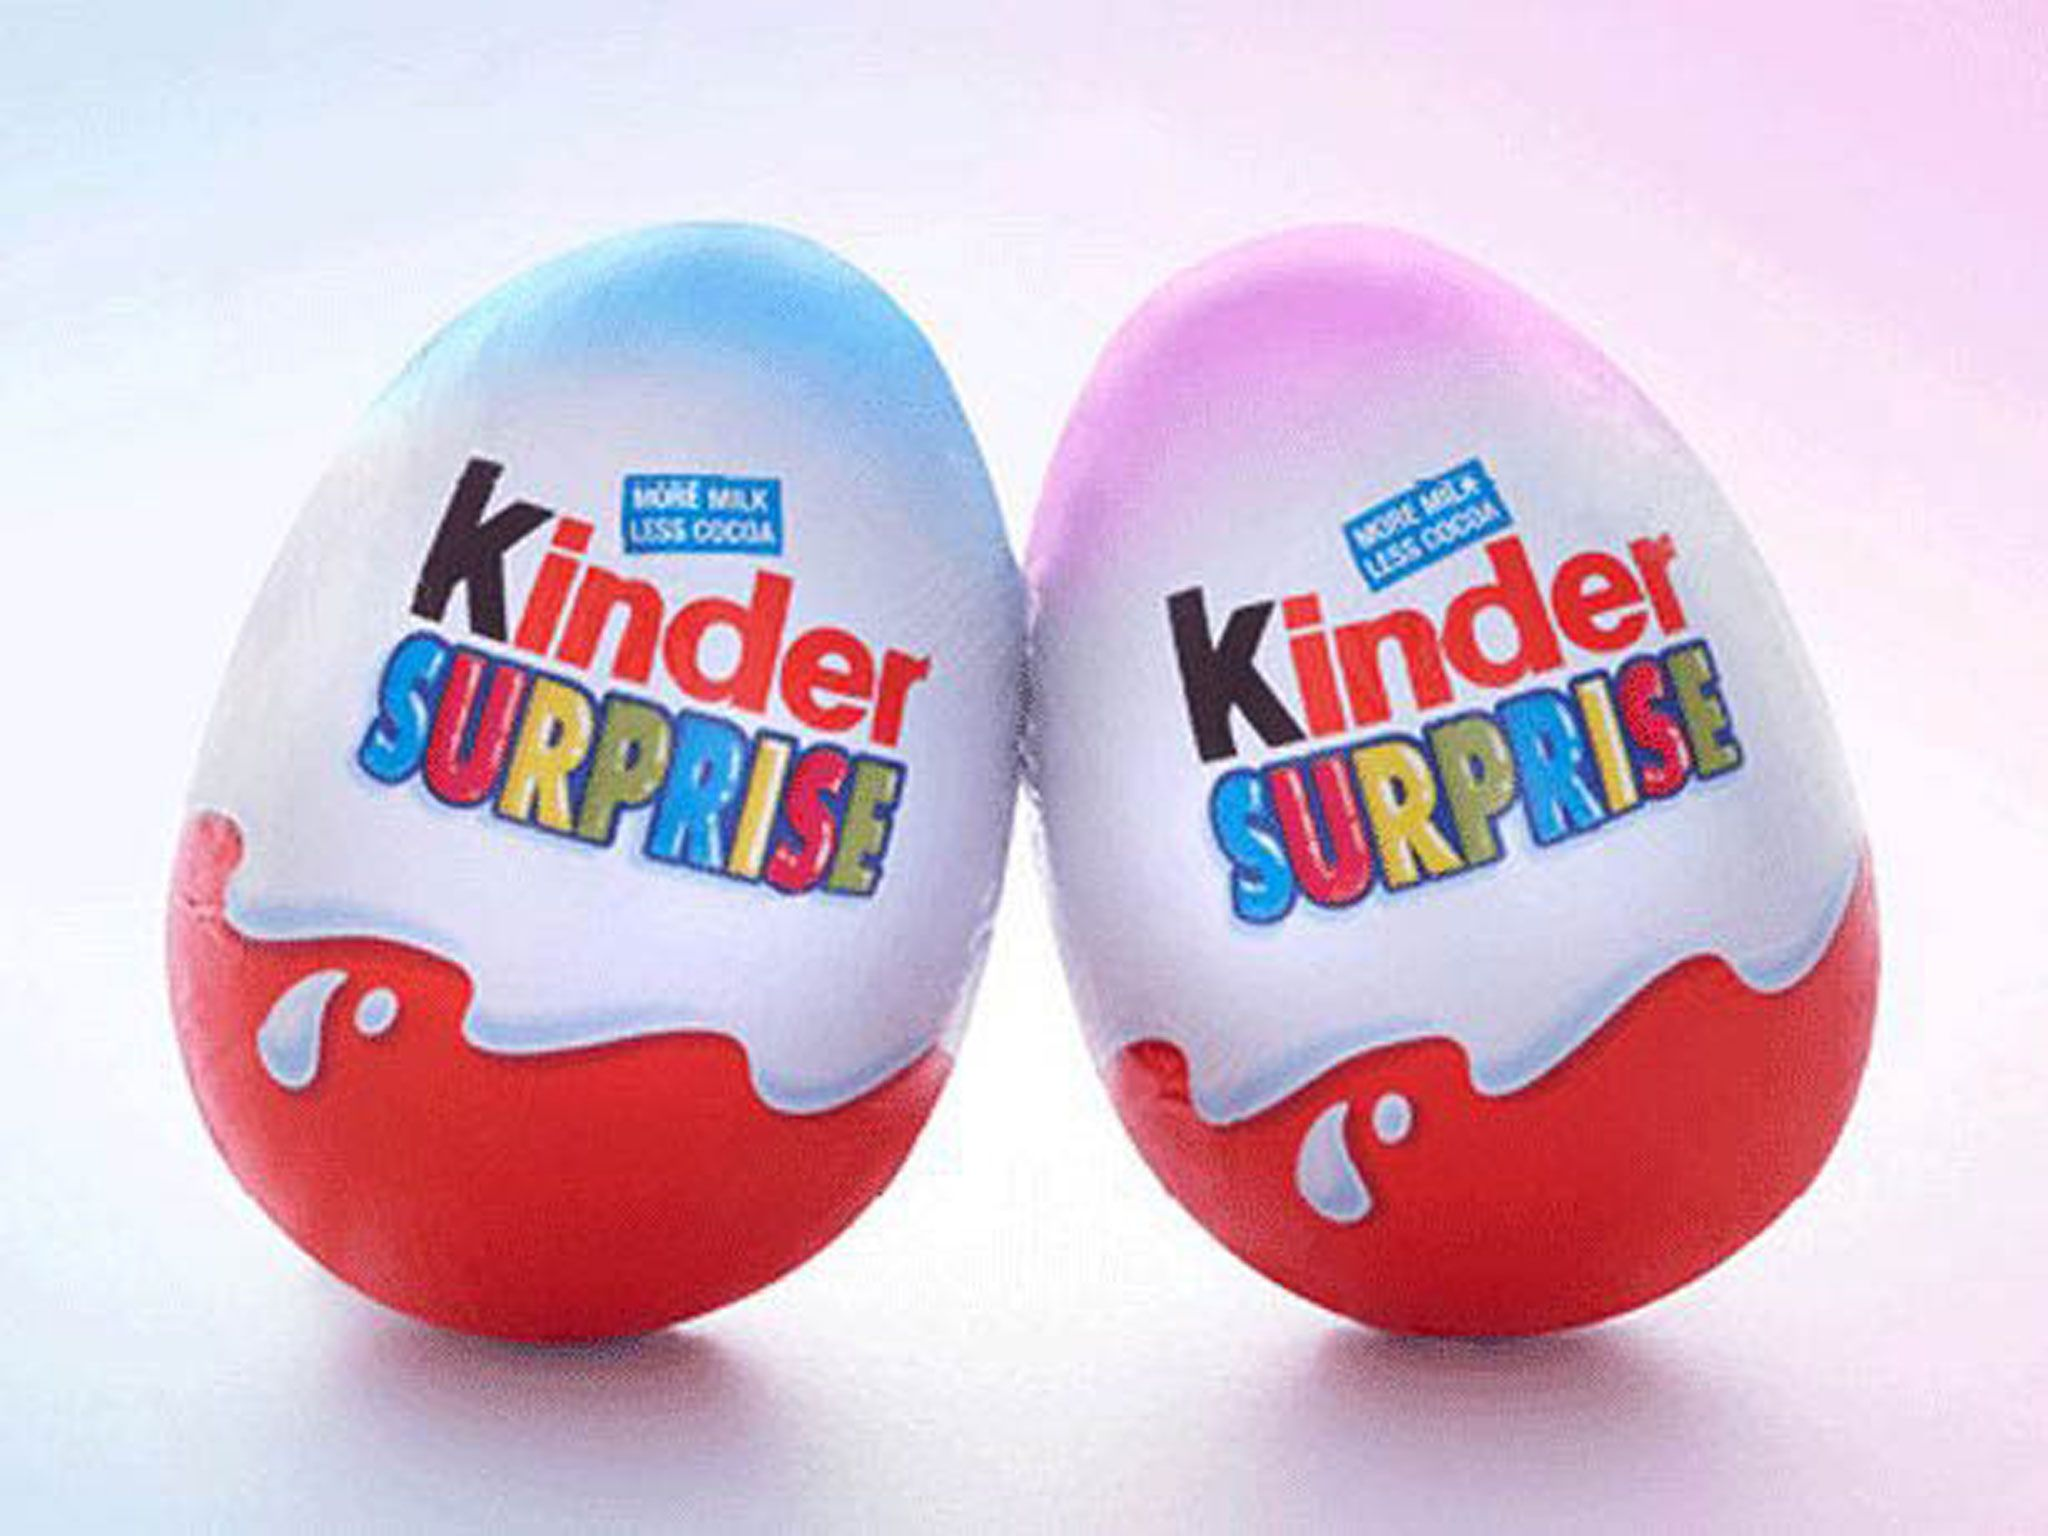 Kinder joy toys car  Kinder Surprise in stereotyping row over pink and blue eggs  Funny